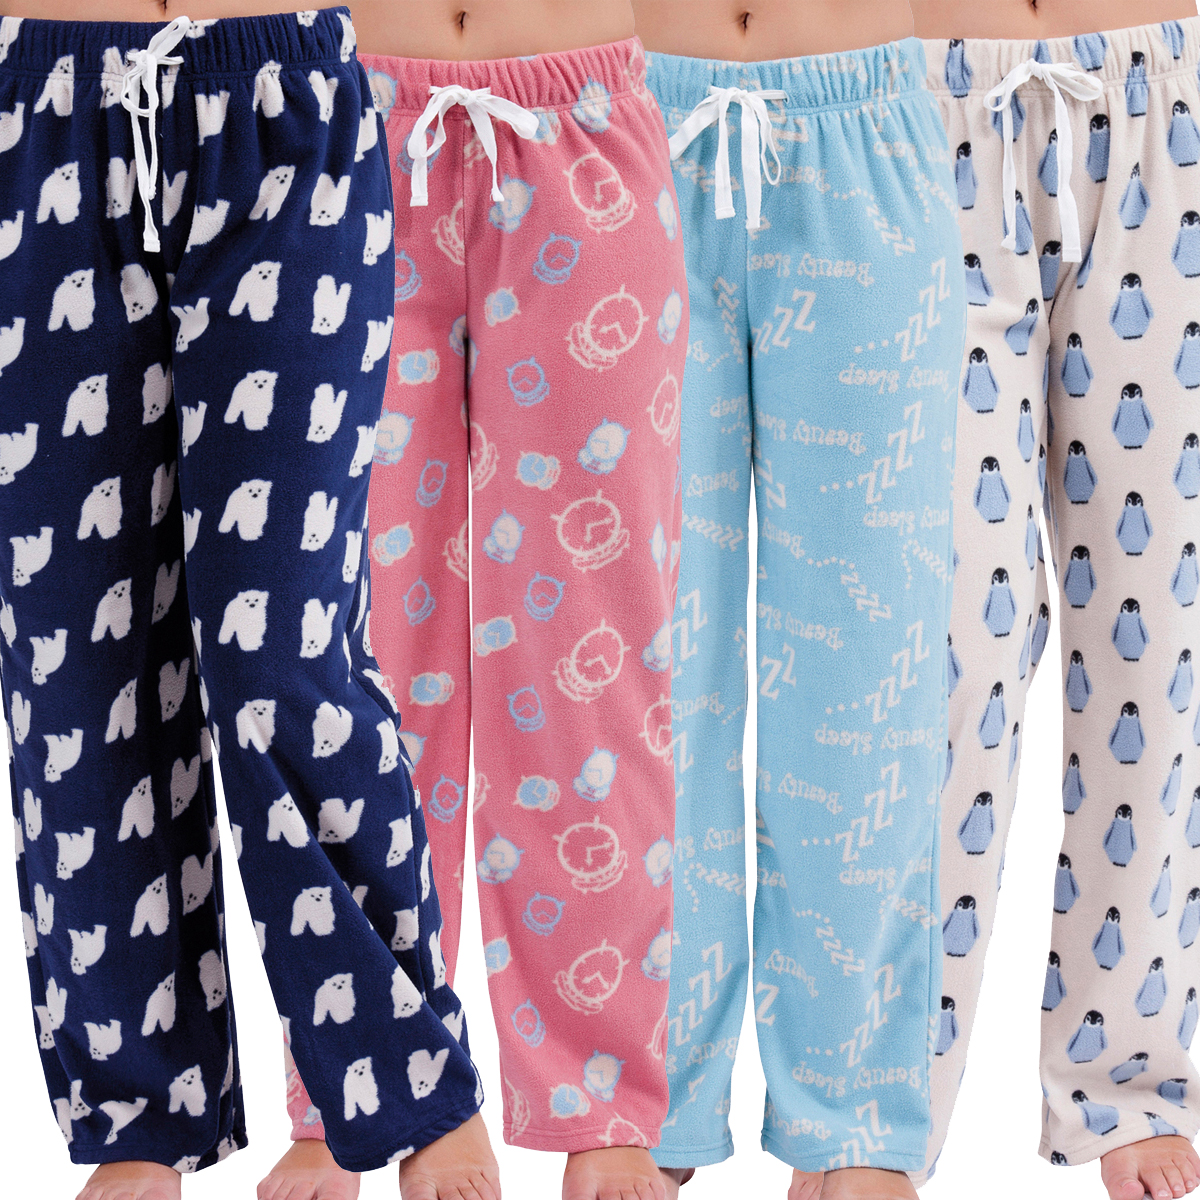 c76399d504 Womens Lounge PJ Pyjamas Pants Warm Fleece Night Wear PJ's Pant Pyjama  Ladies